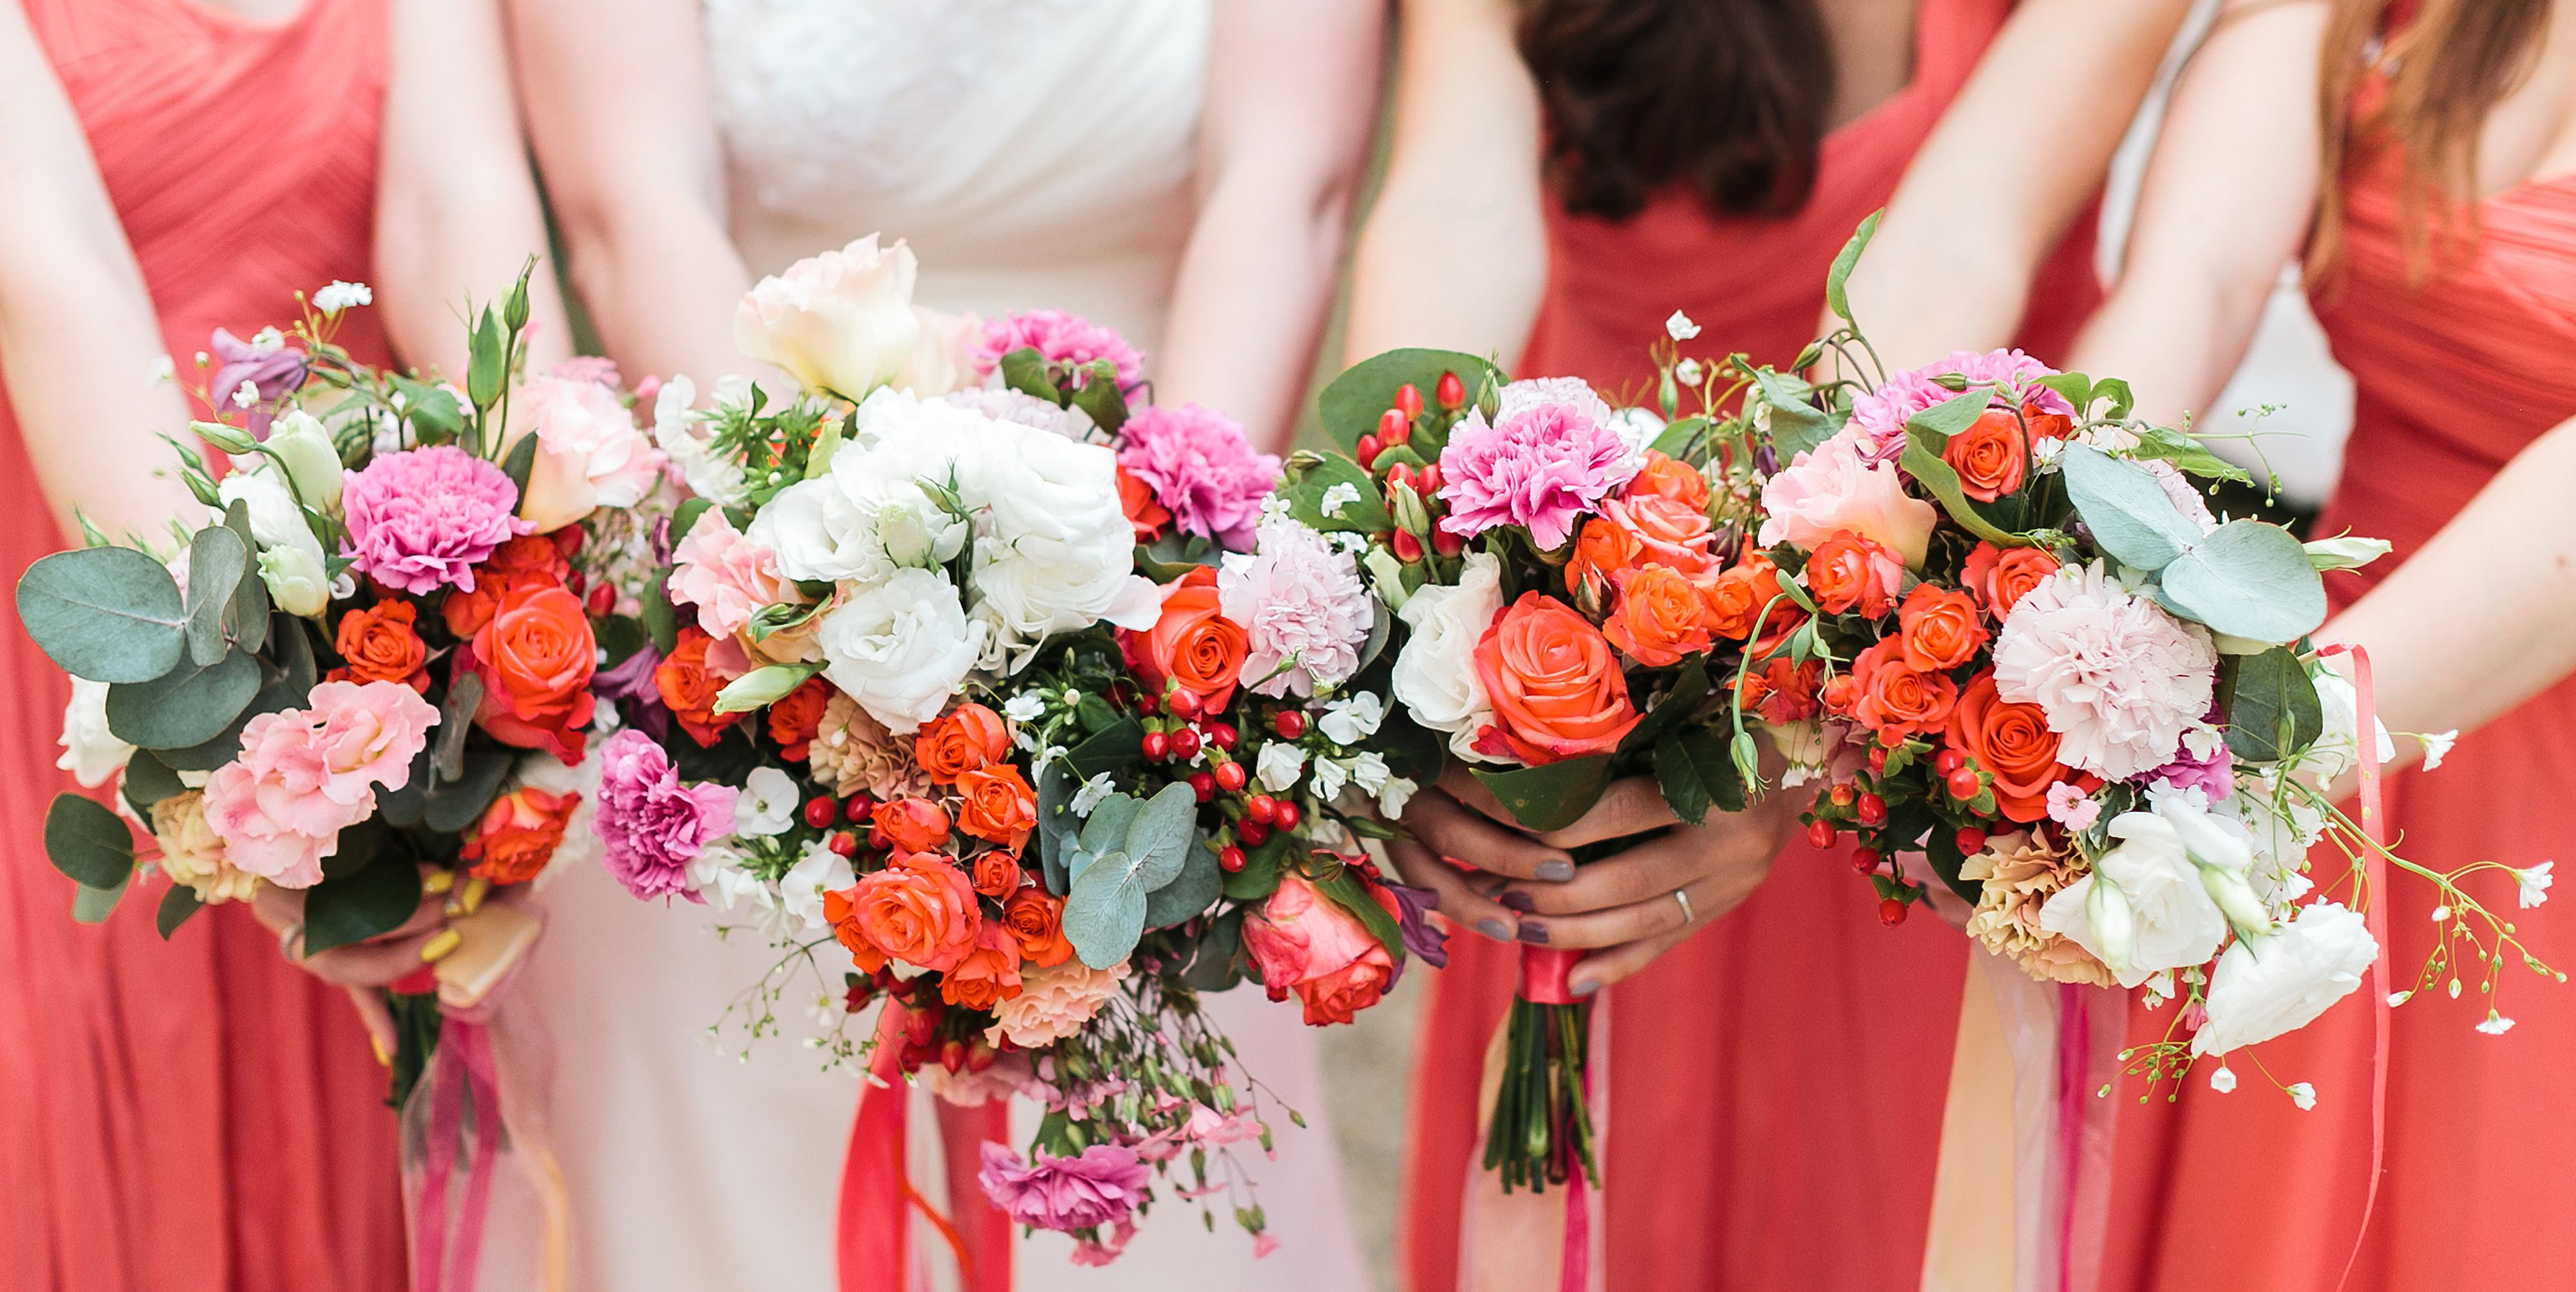 You could earn up to £100 an hour being a professional bridesmaid